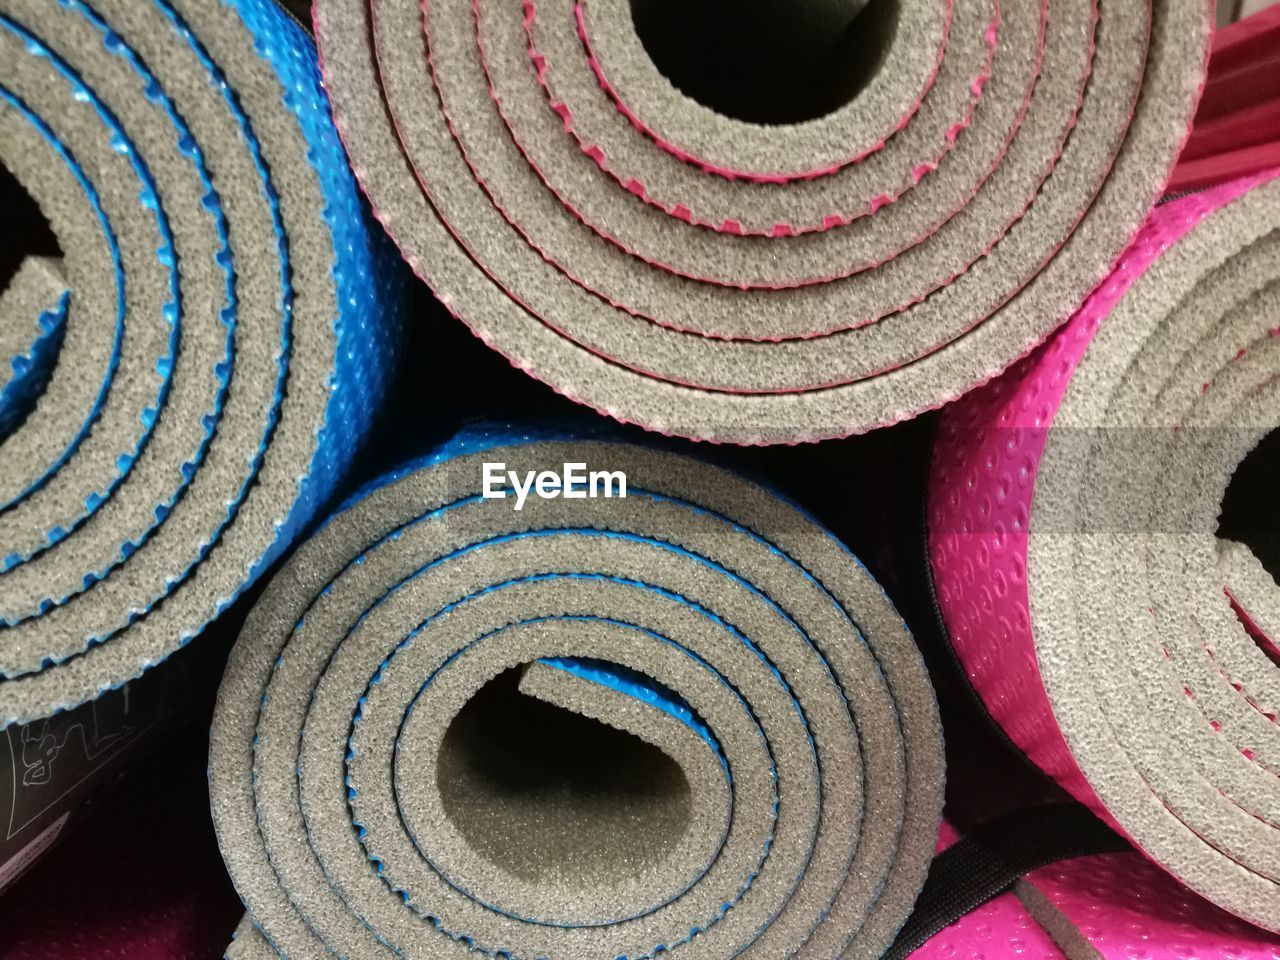 rolled up, stack, full frame, textile, indoors, spool, no people, roll, backgrounds, close-up, day